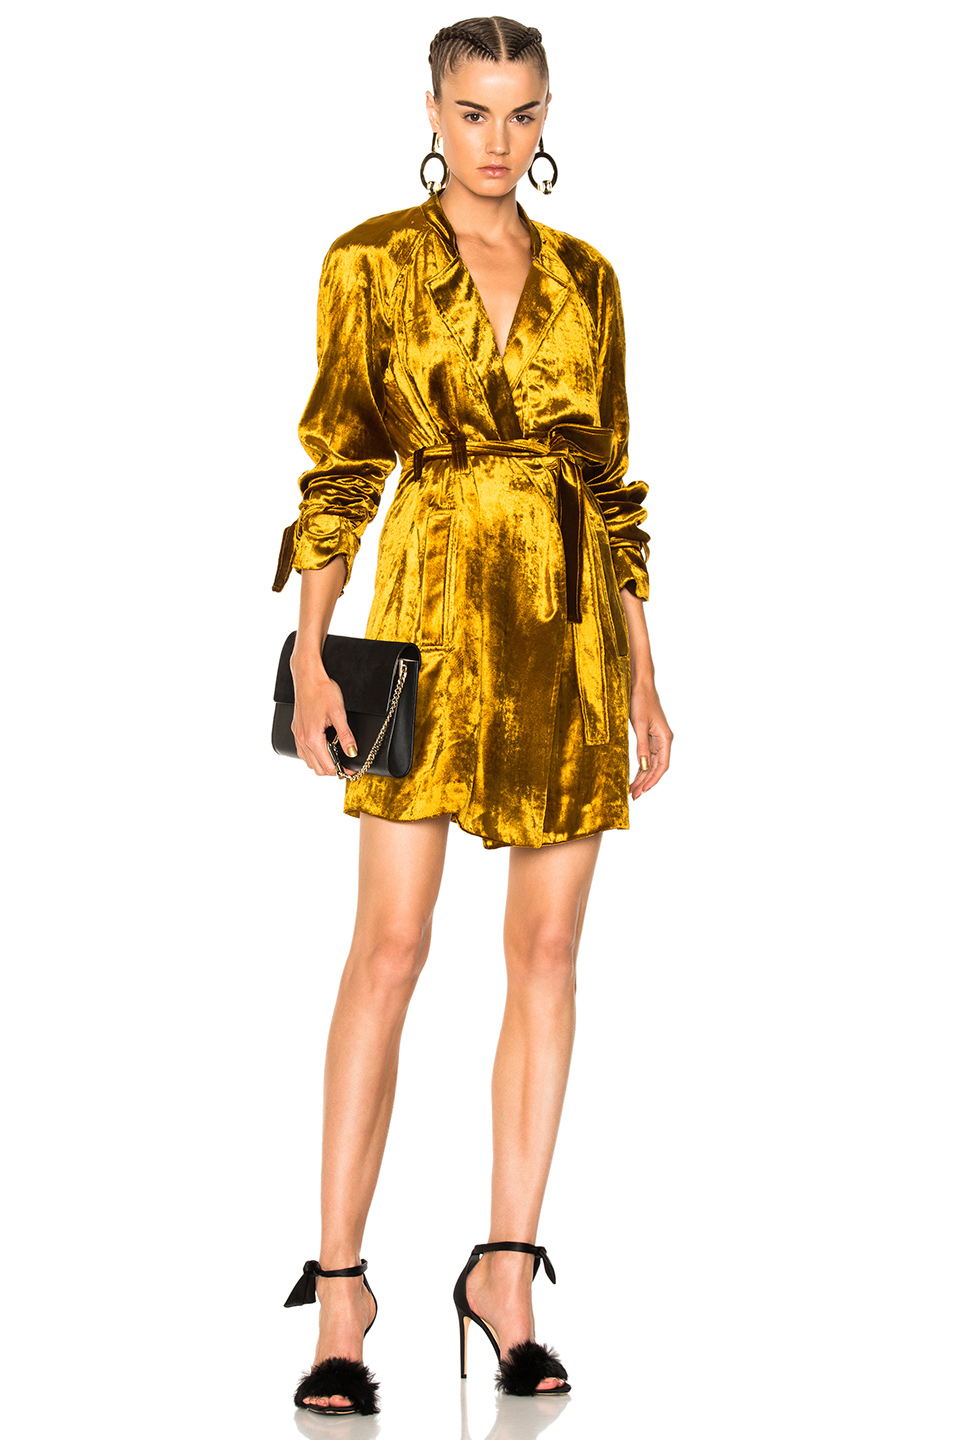 A.L.C. Kendall Dress in Yellow